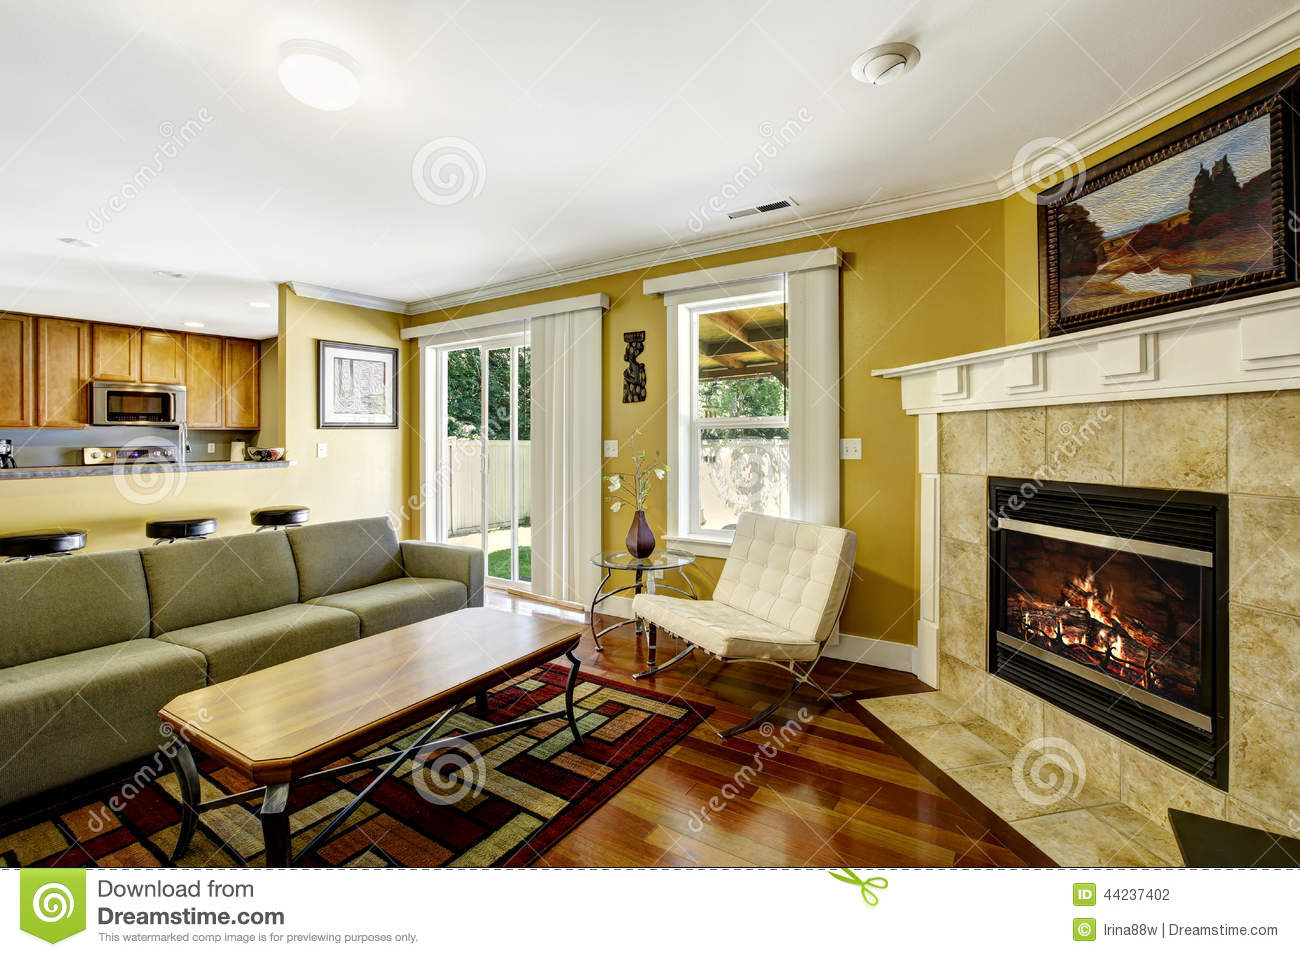 Mustard Living Room Home Interior With Mustard Walls And Green Couch Stock Photo